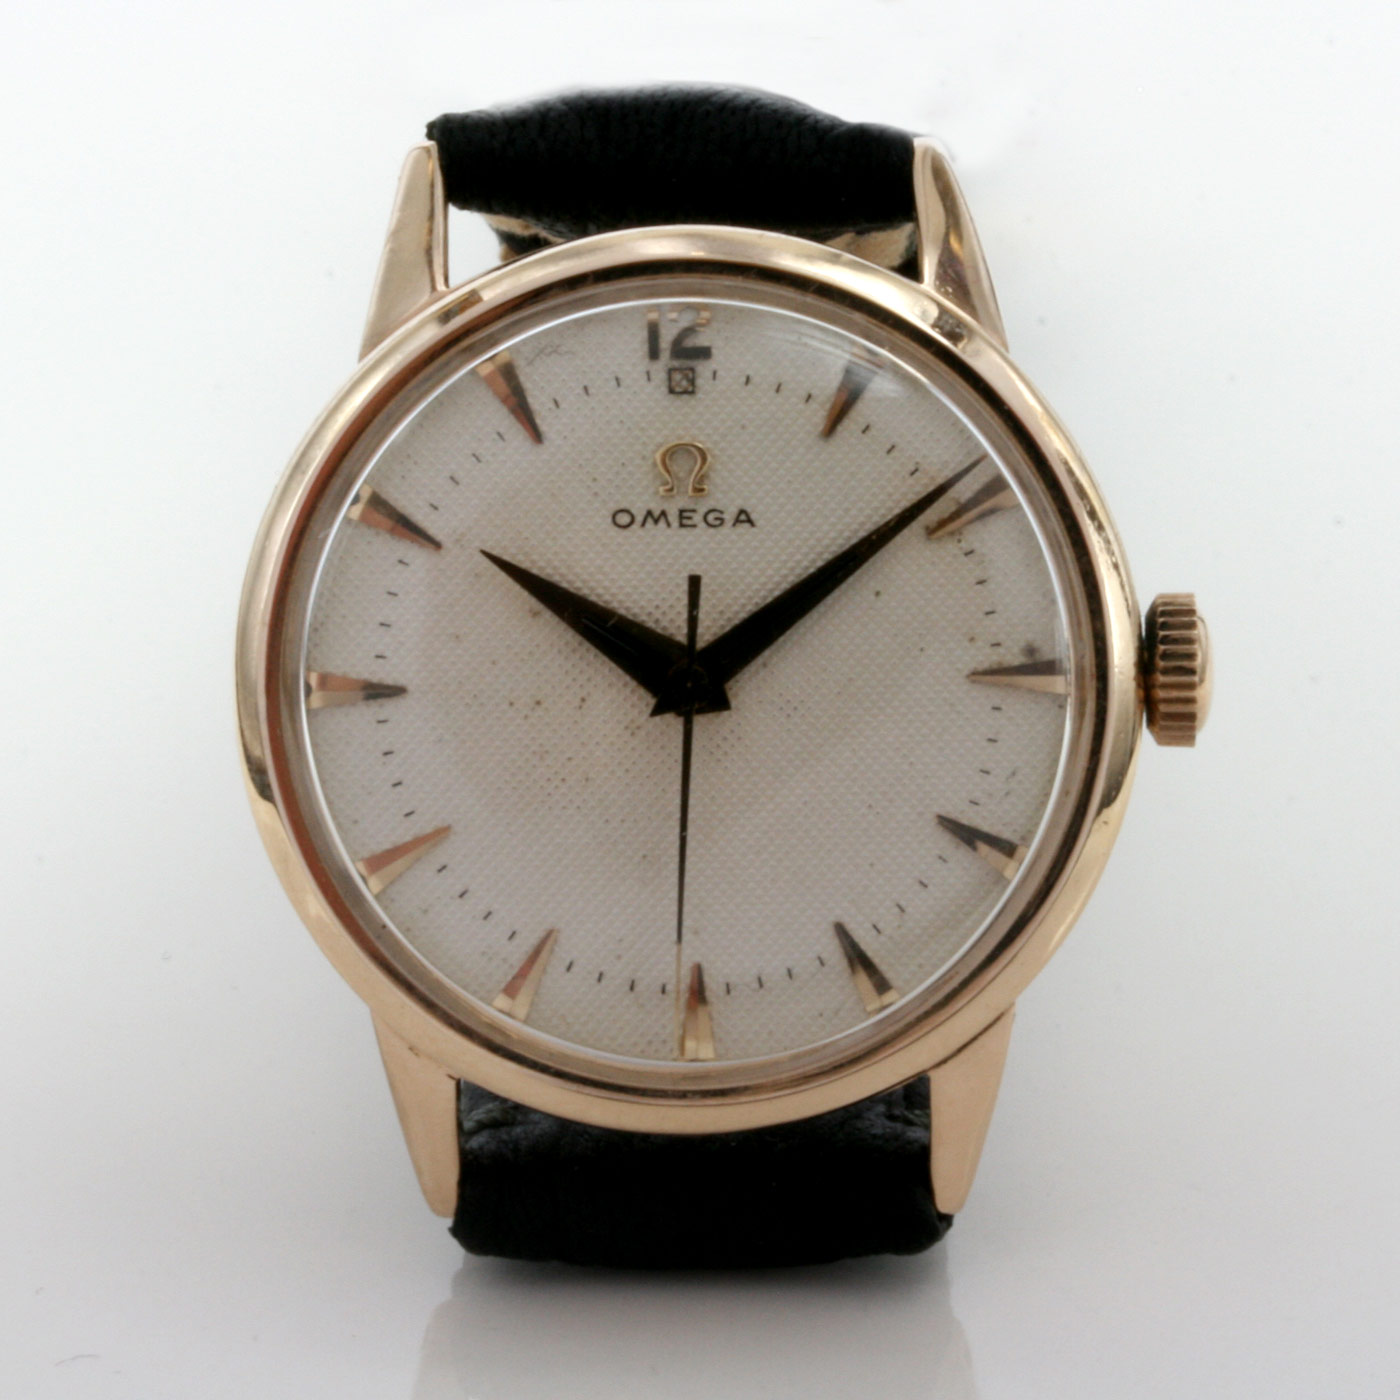 Buy Vintage 9ct Omega watch from 1952 Sold Items, Sold ...